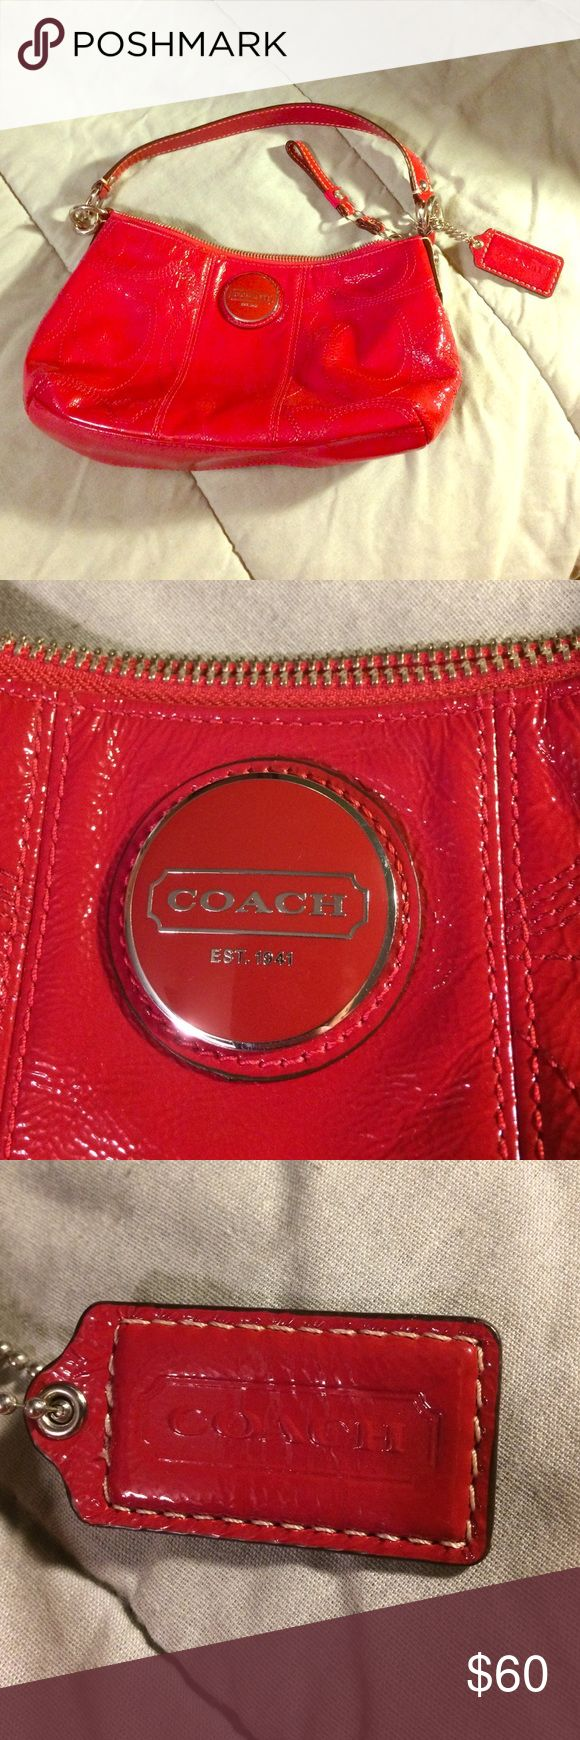 Authentic Coach clutch purse Red coach clutch purse. New without tags Coach Bags Clutches & Wristlets